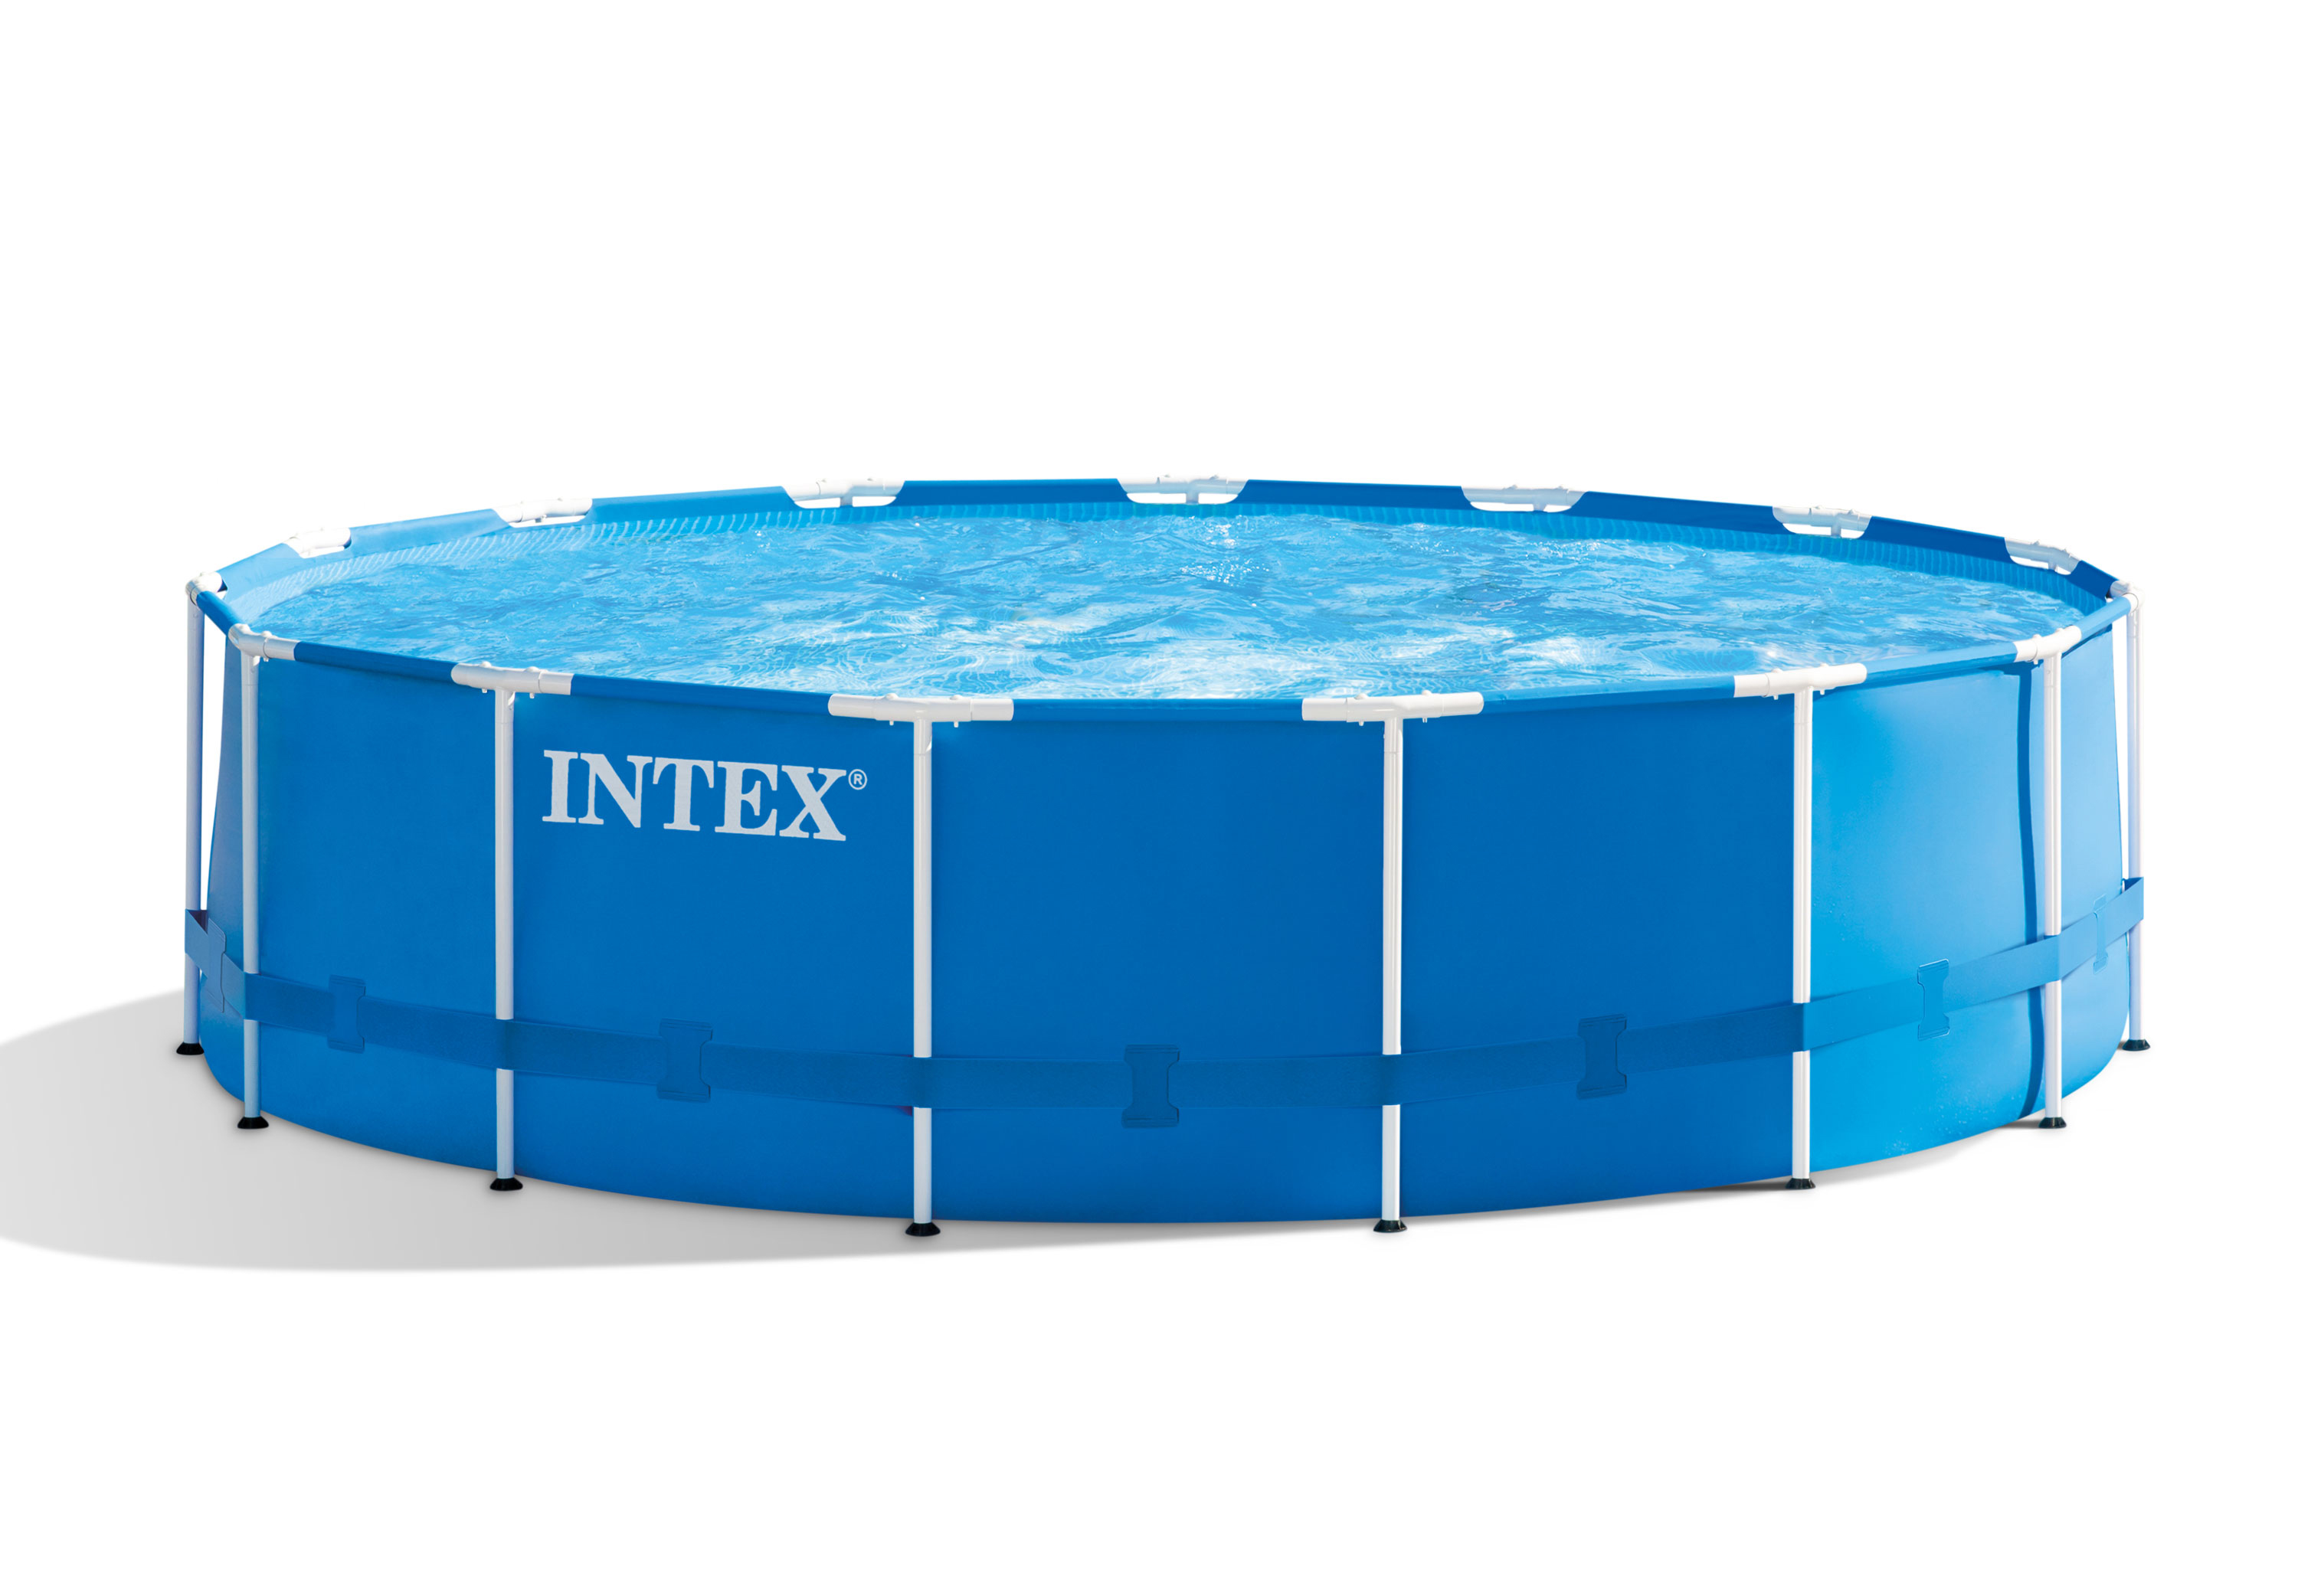 INTEX 15 ft x 48 in Metal Frame Round Pool Set